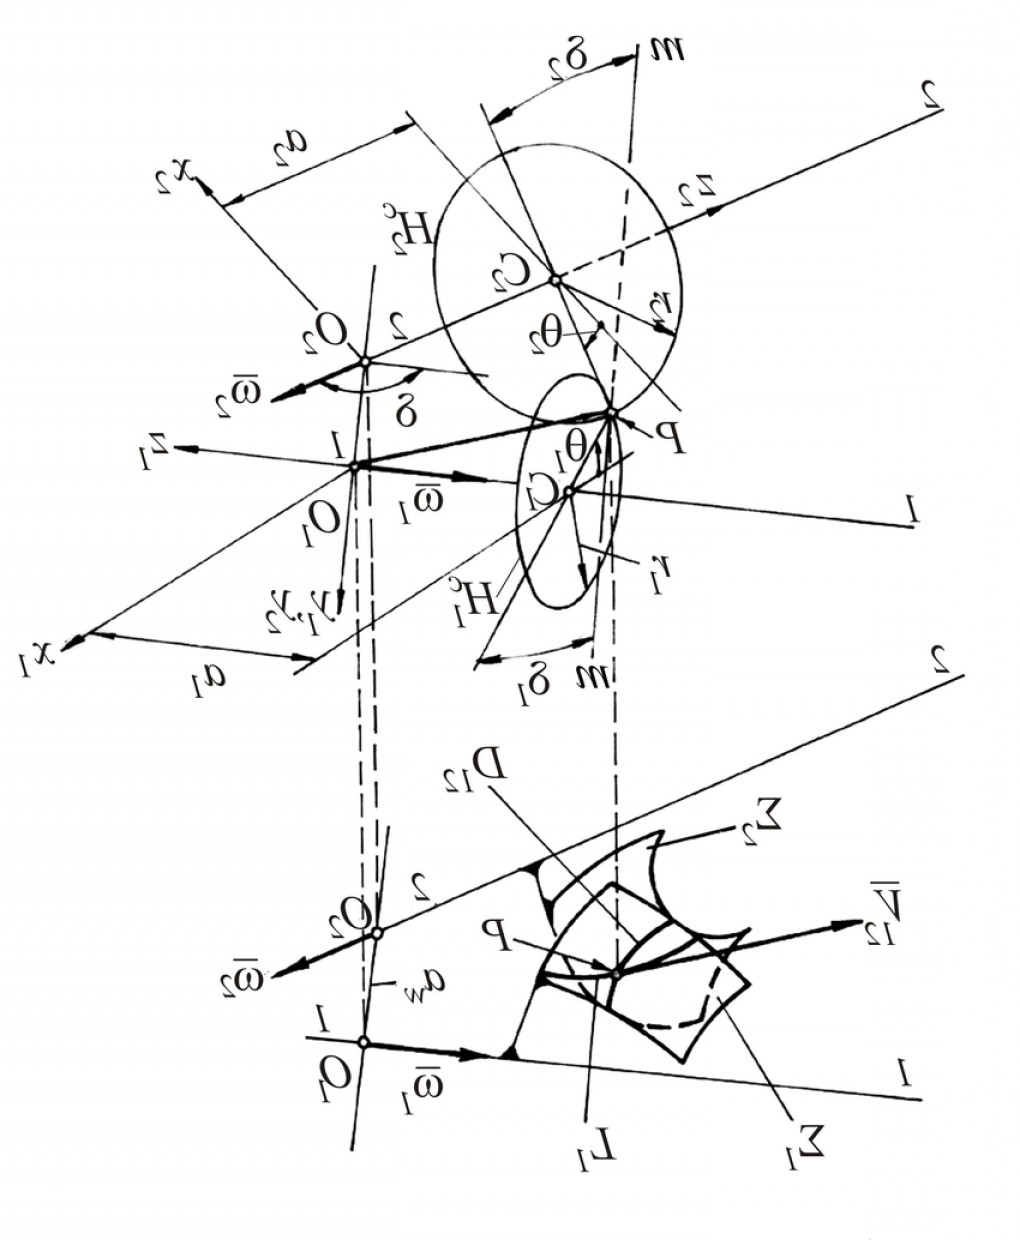 Rotational Kinematics Diagram Of Vectors: Geometric And Kinematics Scheme Of Spatial Gear Pair With Linear Or Pitch Contact Betweenfig